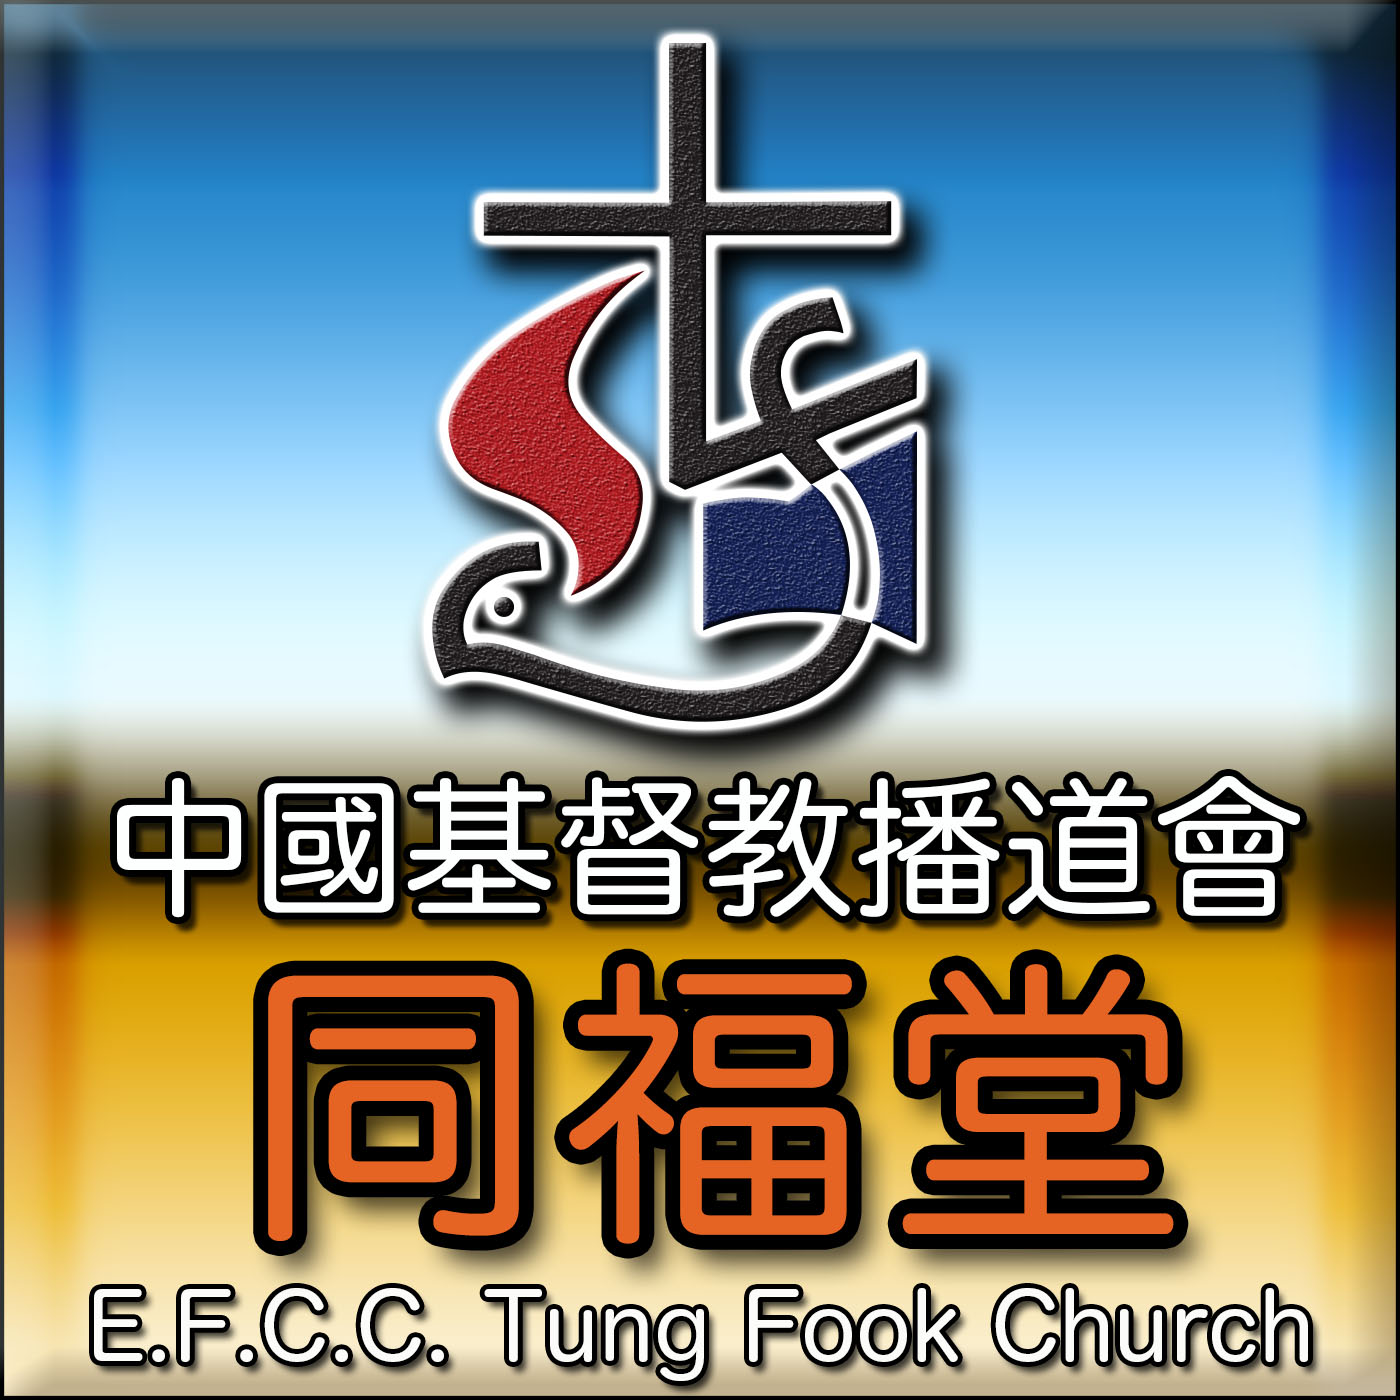 同福堂 Tung Fook Church